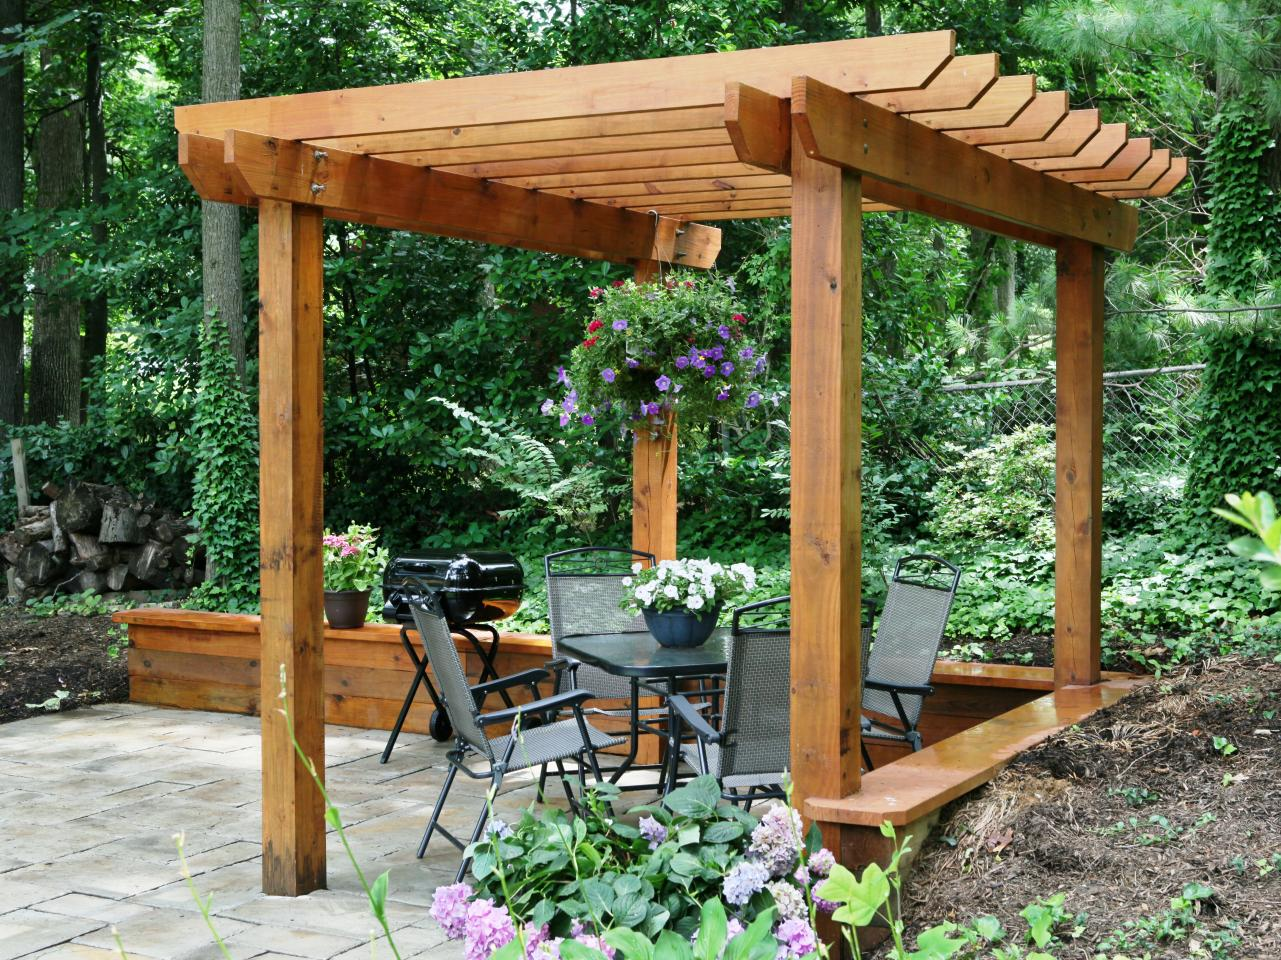 Vertical Garden Design With Gazebo Installation How to Build a Pergola